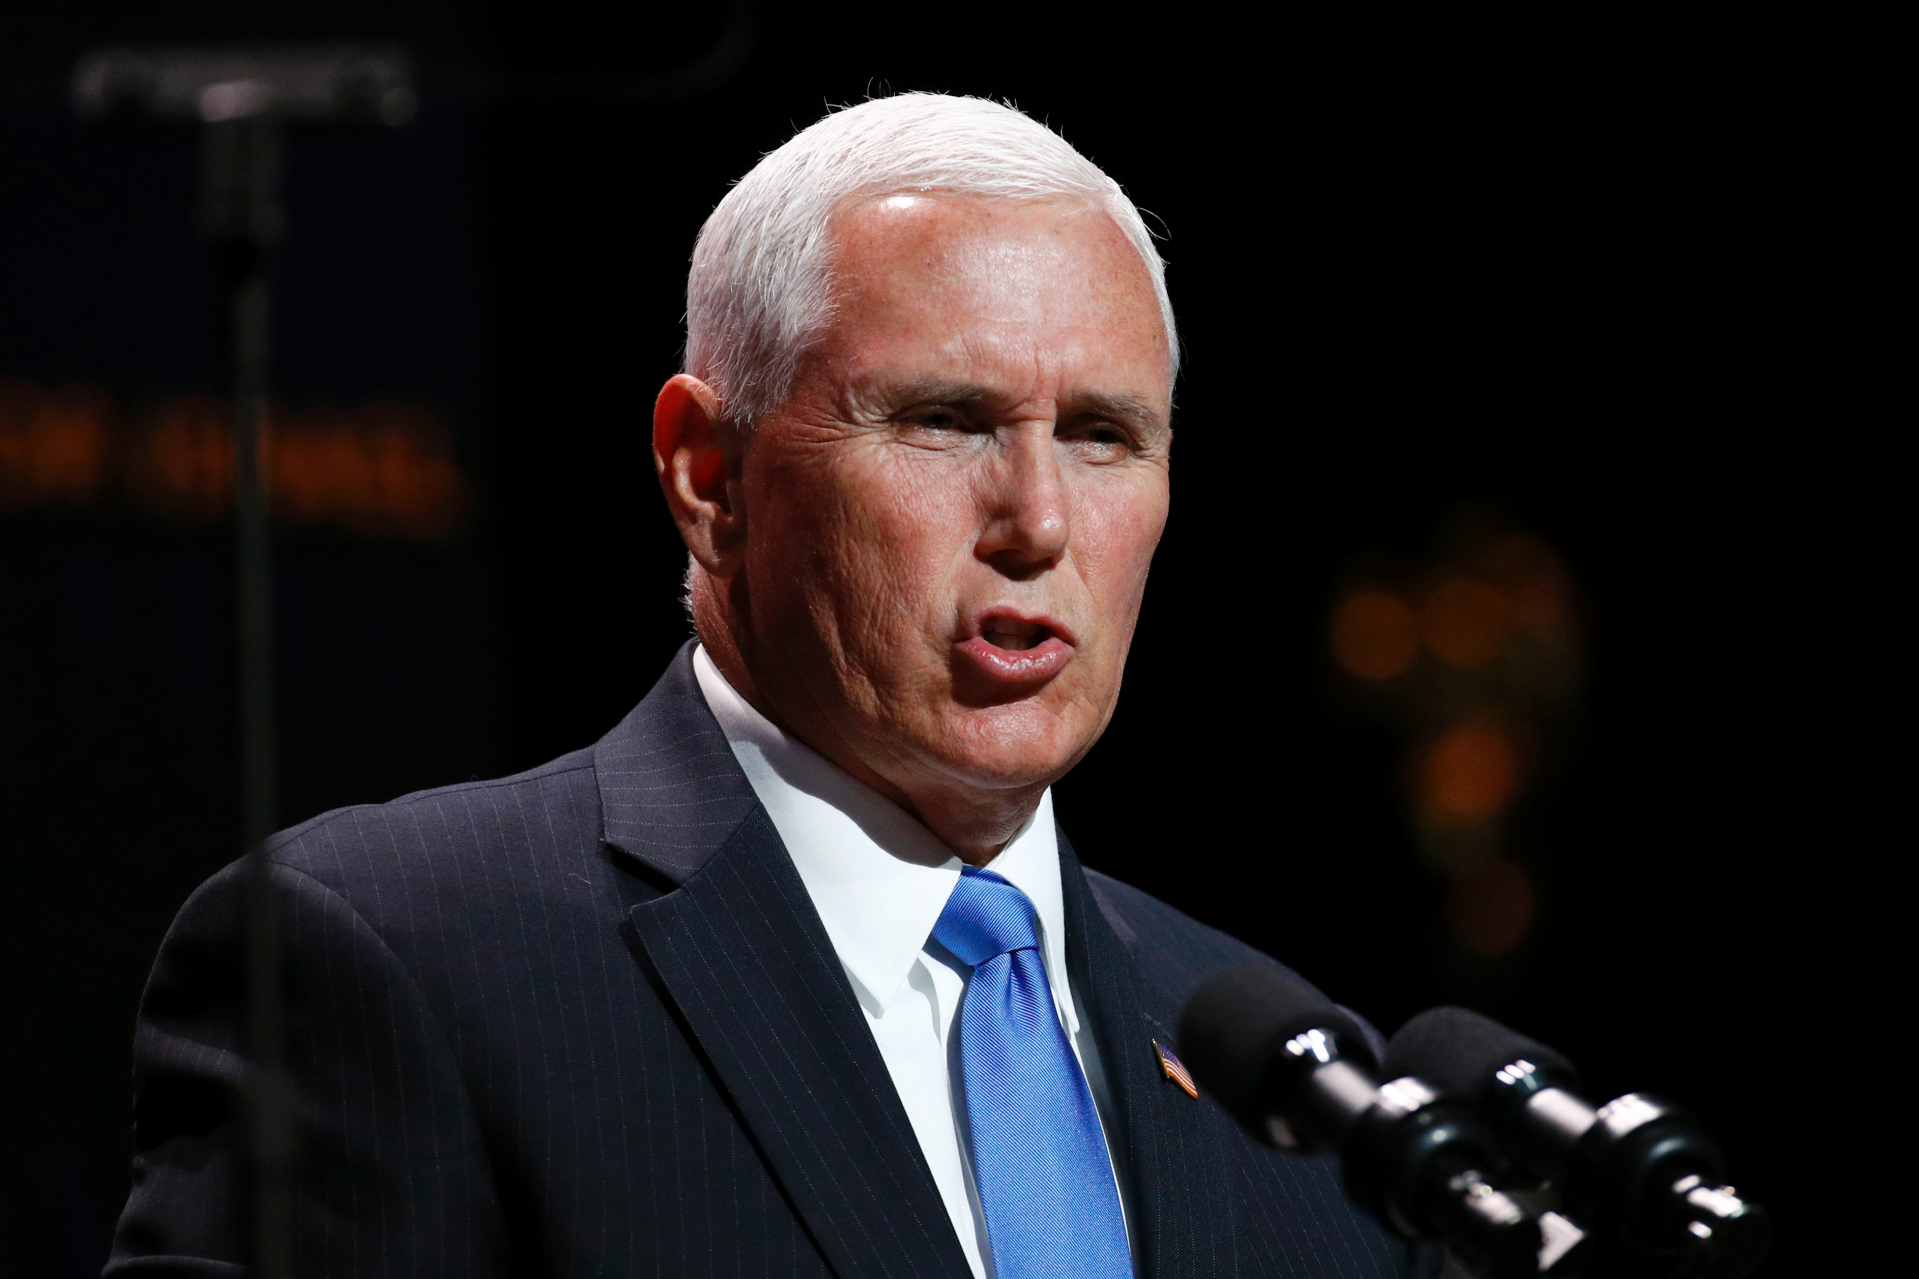 Westlake Legal Group ContentBroker_contentid-932c1a9b29294b81b3ab20085ed6d1ce NC teacher's alleged Mike Pence remark gets her placed on leave, prompts Secret Service probe: reports fox-news/us/us-regions/southeast/north-carolina fox-news/us/education/teachers fox-news/us/education/high-school fox-news/person/mike-pence fox-news/health/education fox news fnc/politics fnc Danielle Wallace b70a2d68-9bb2-5f88-abcd-500919849d29 article